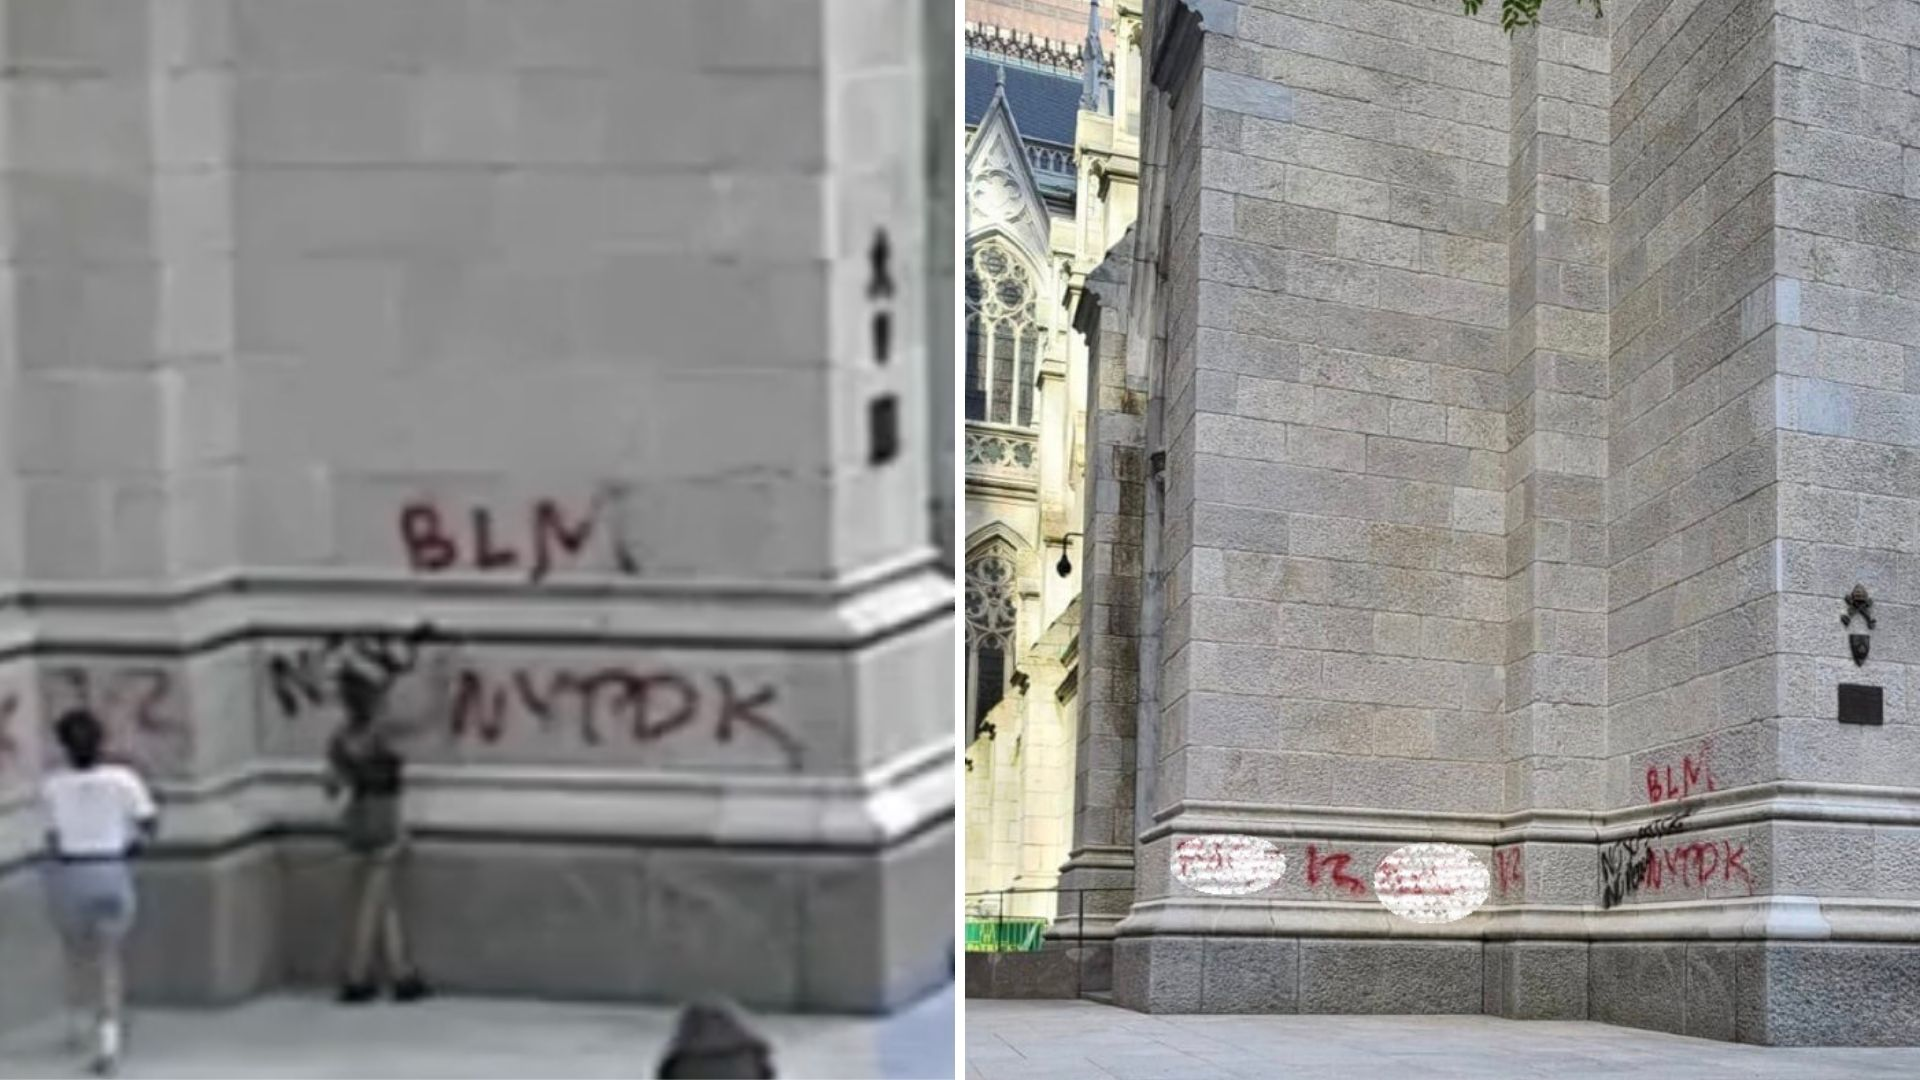 St. Patrick's Cathedral vandalized